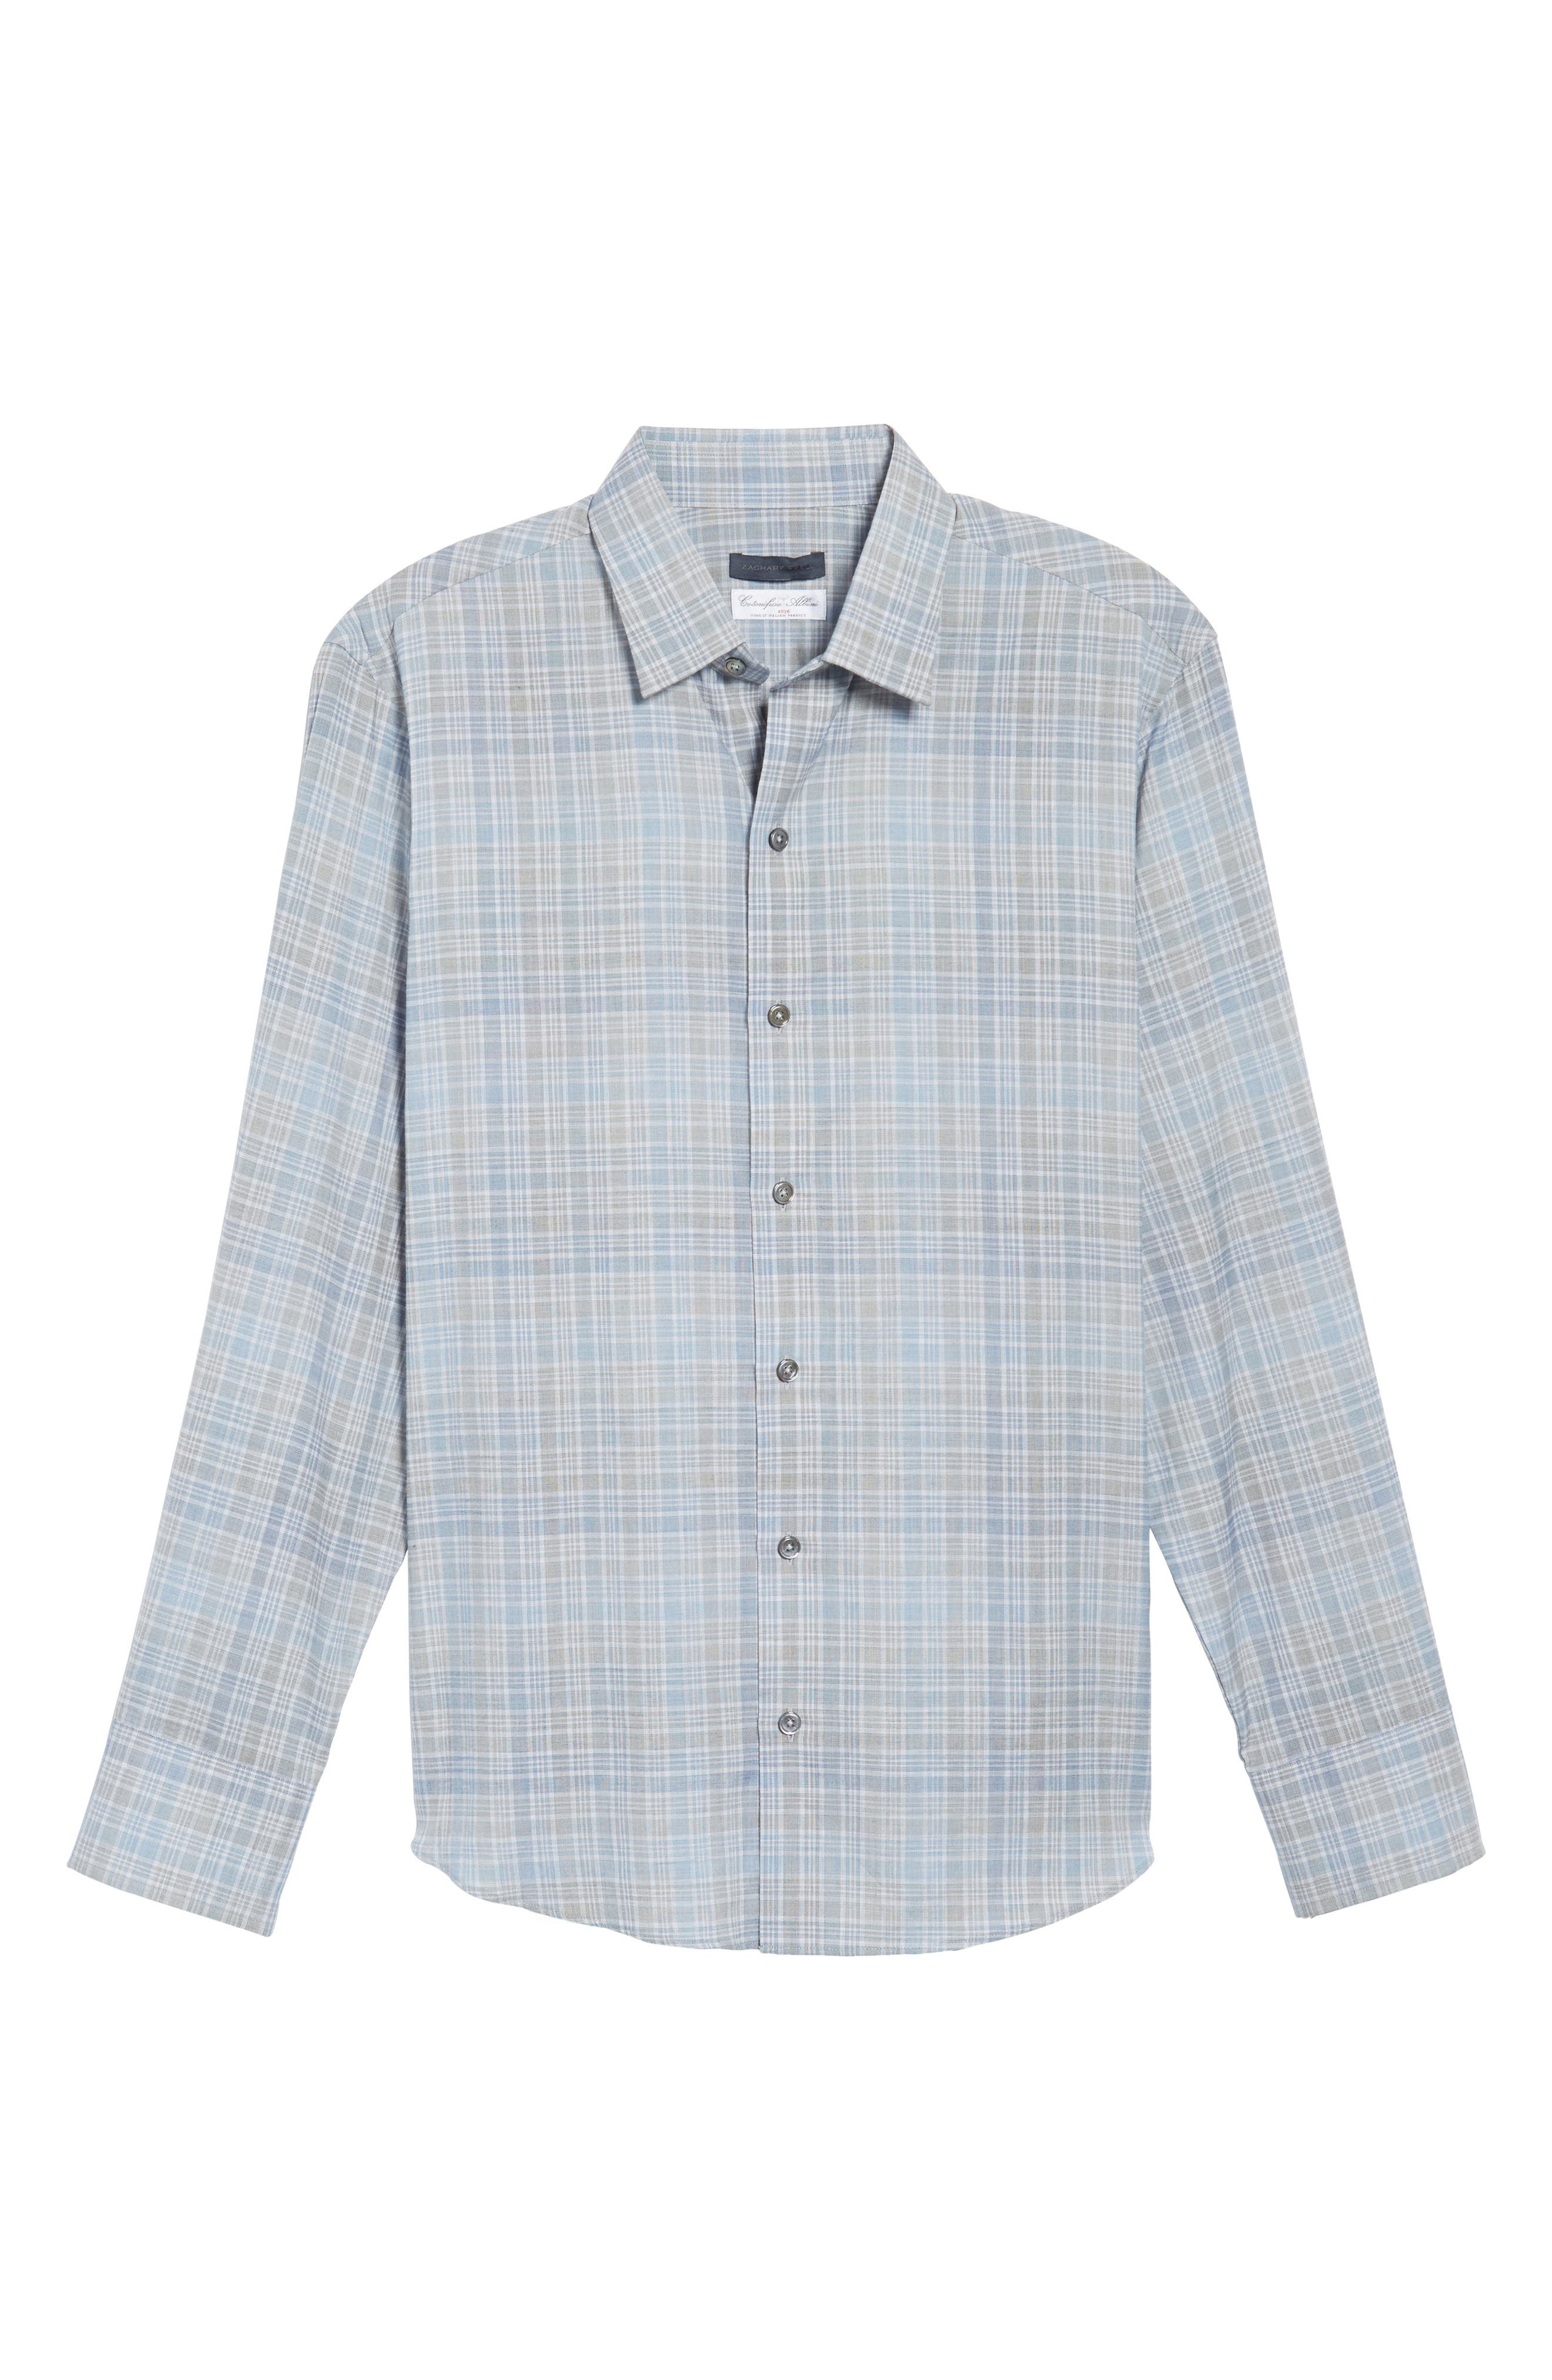 Johannes Slim Fit Plaid Sport Shirt,                             Alternate thumbnail 6, color,                             Light Grey